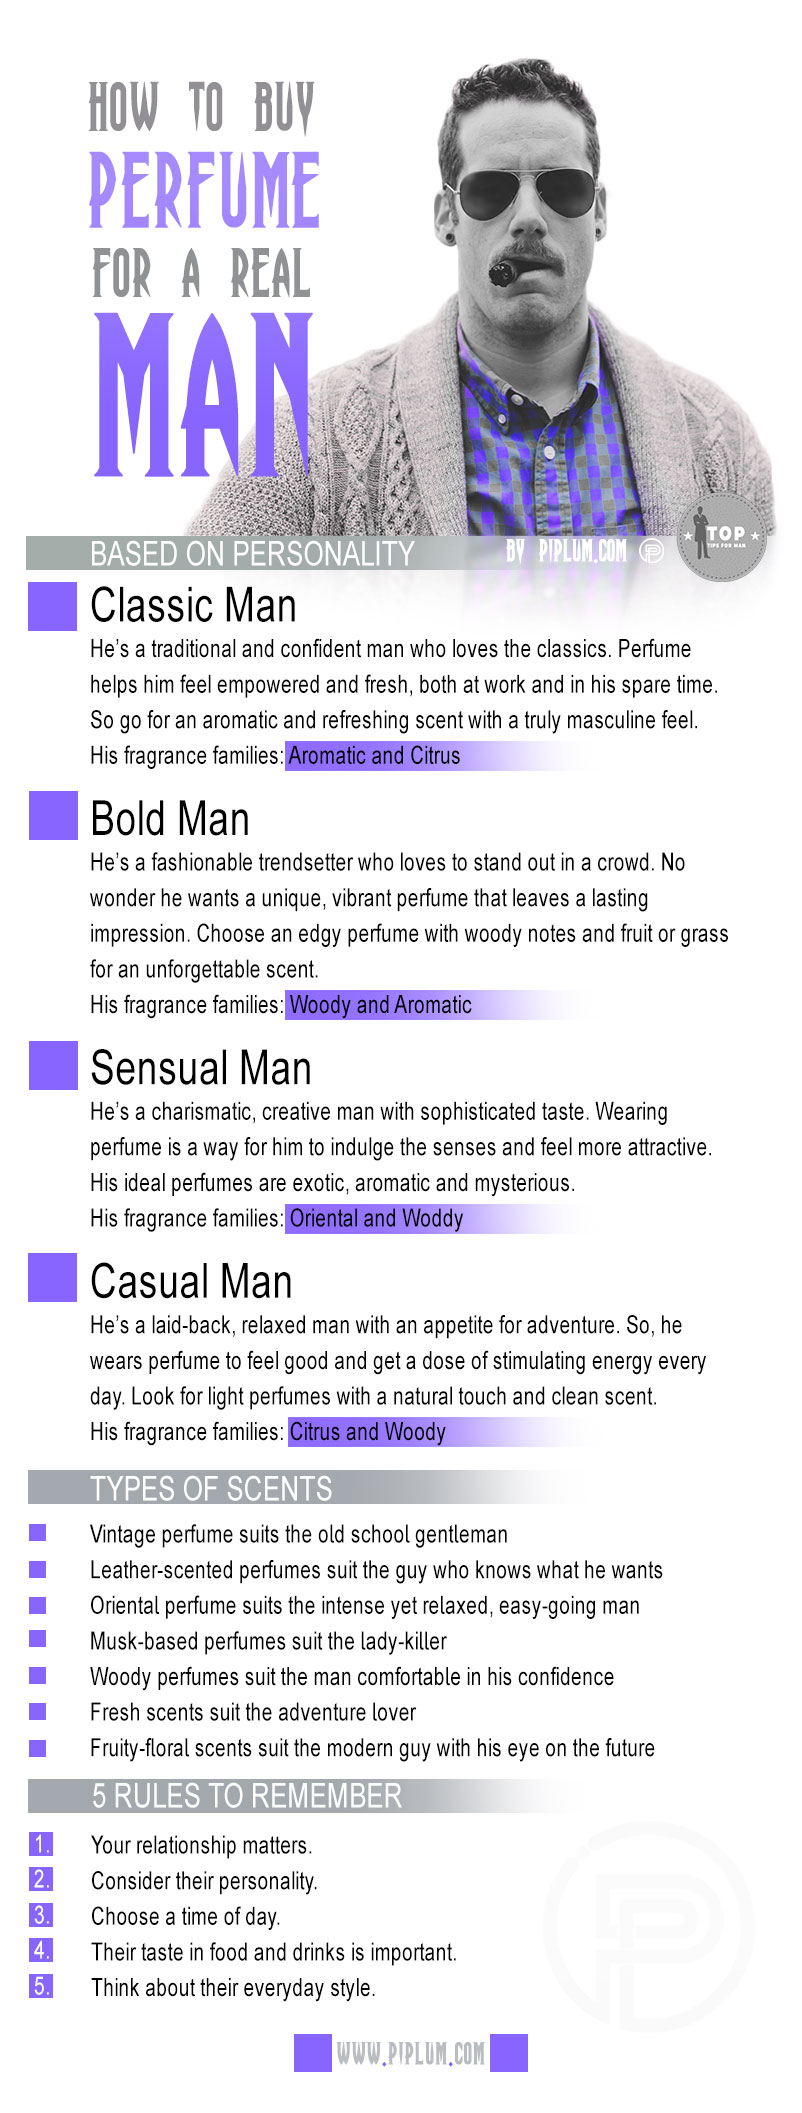 How-to-buy-perfume-for-a-real-man-gifting-guide-poster-christmas-birthday-valentines-day